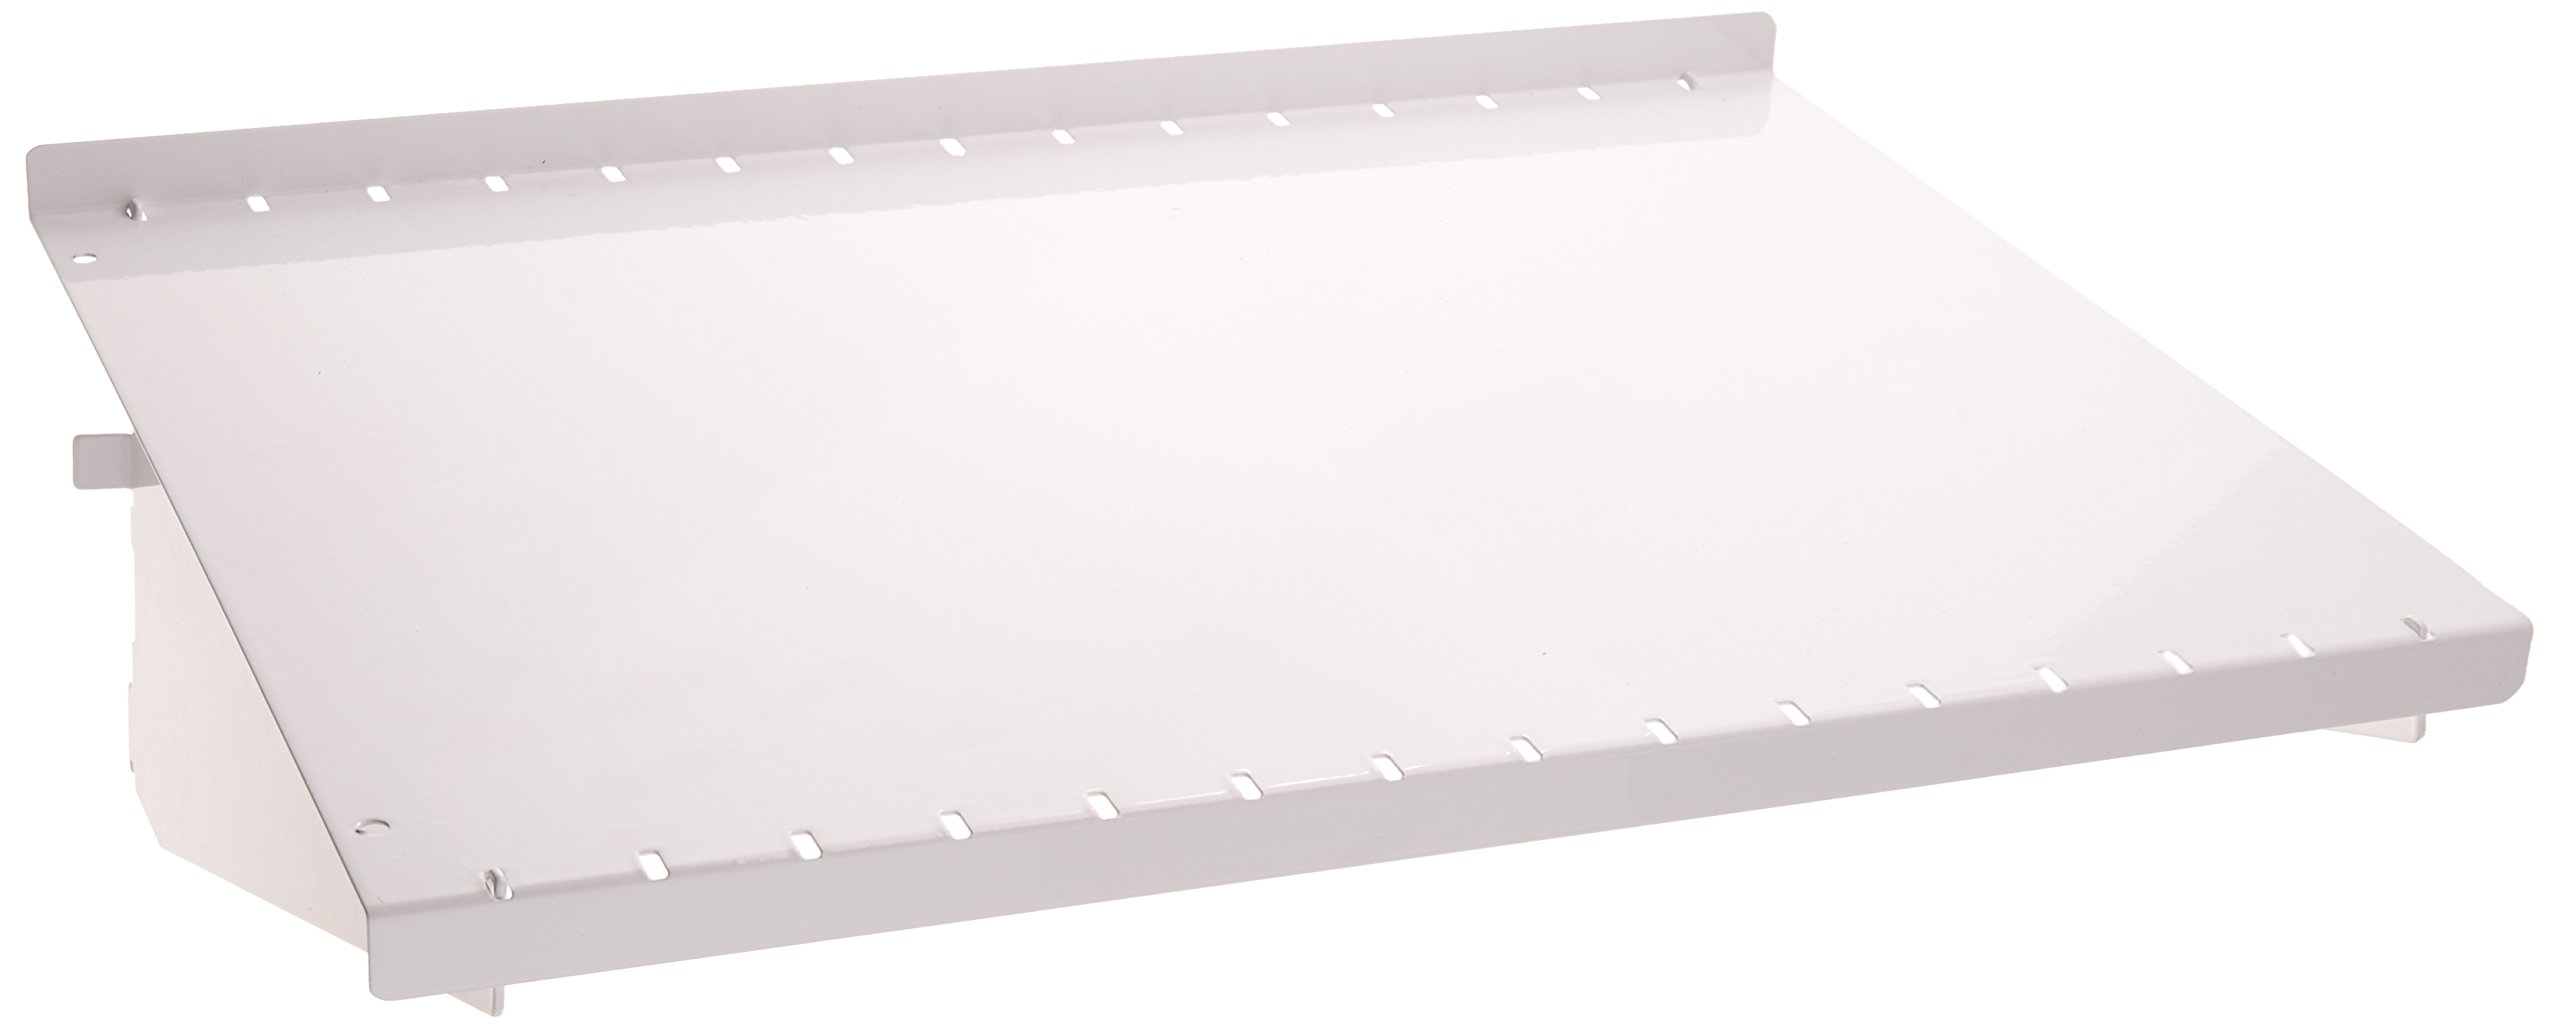 Wall Control ASM-SH-1612 W 12'' Deep Pegboard Shelf Assembly for Wall Control Pegboard Only, White